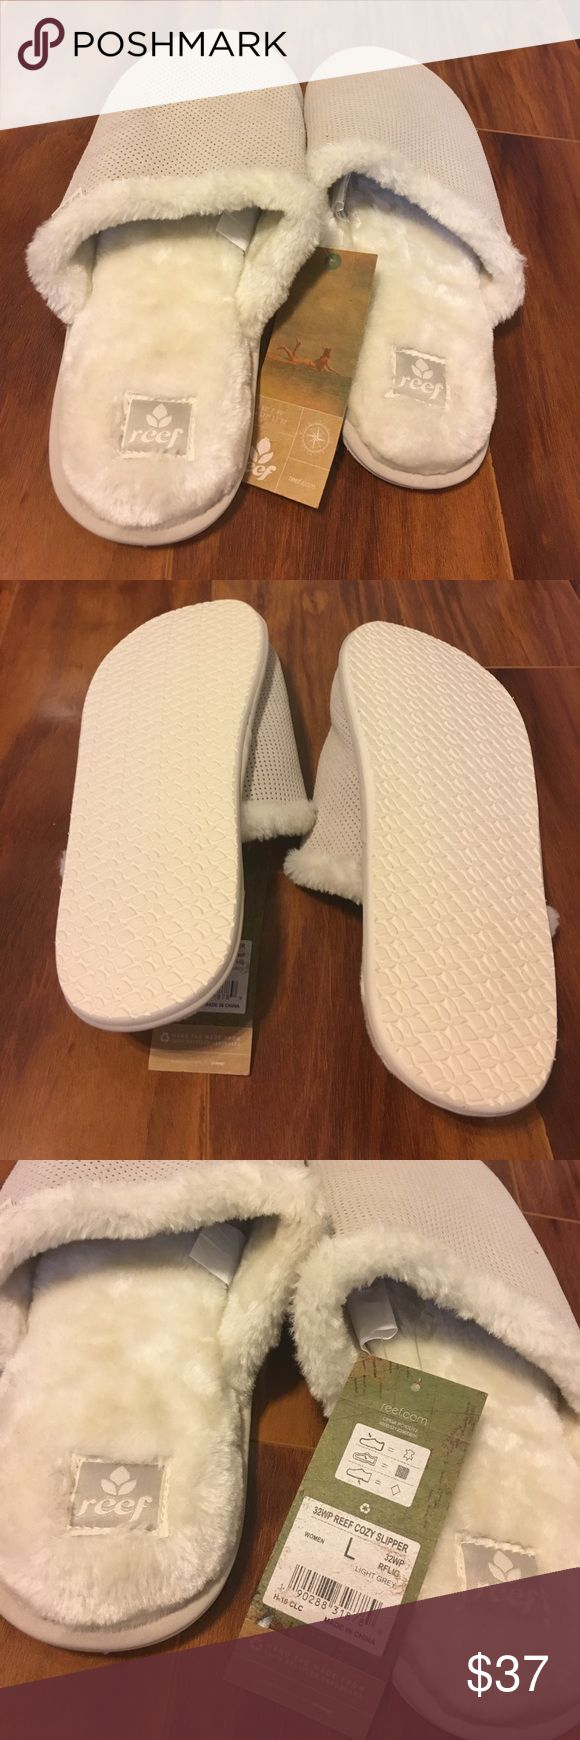 Reef Size Large Slippers NWT NWT Reef Slippers Size Large Reef Shoes Slippers